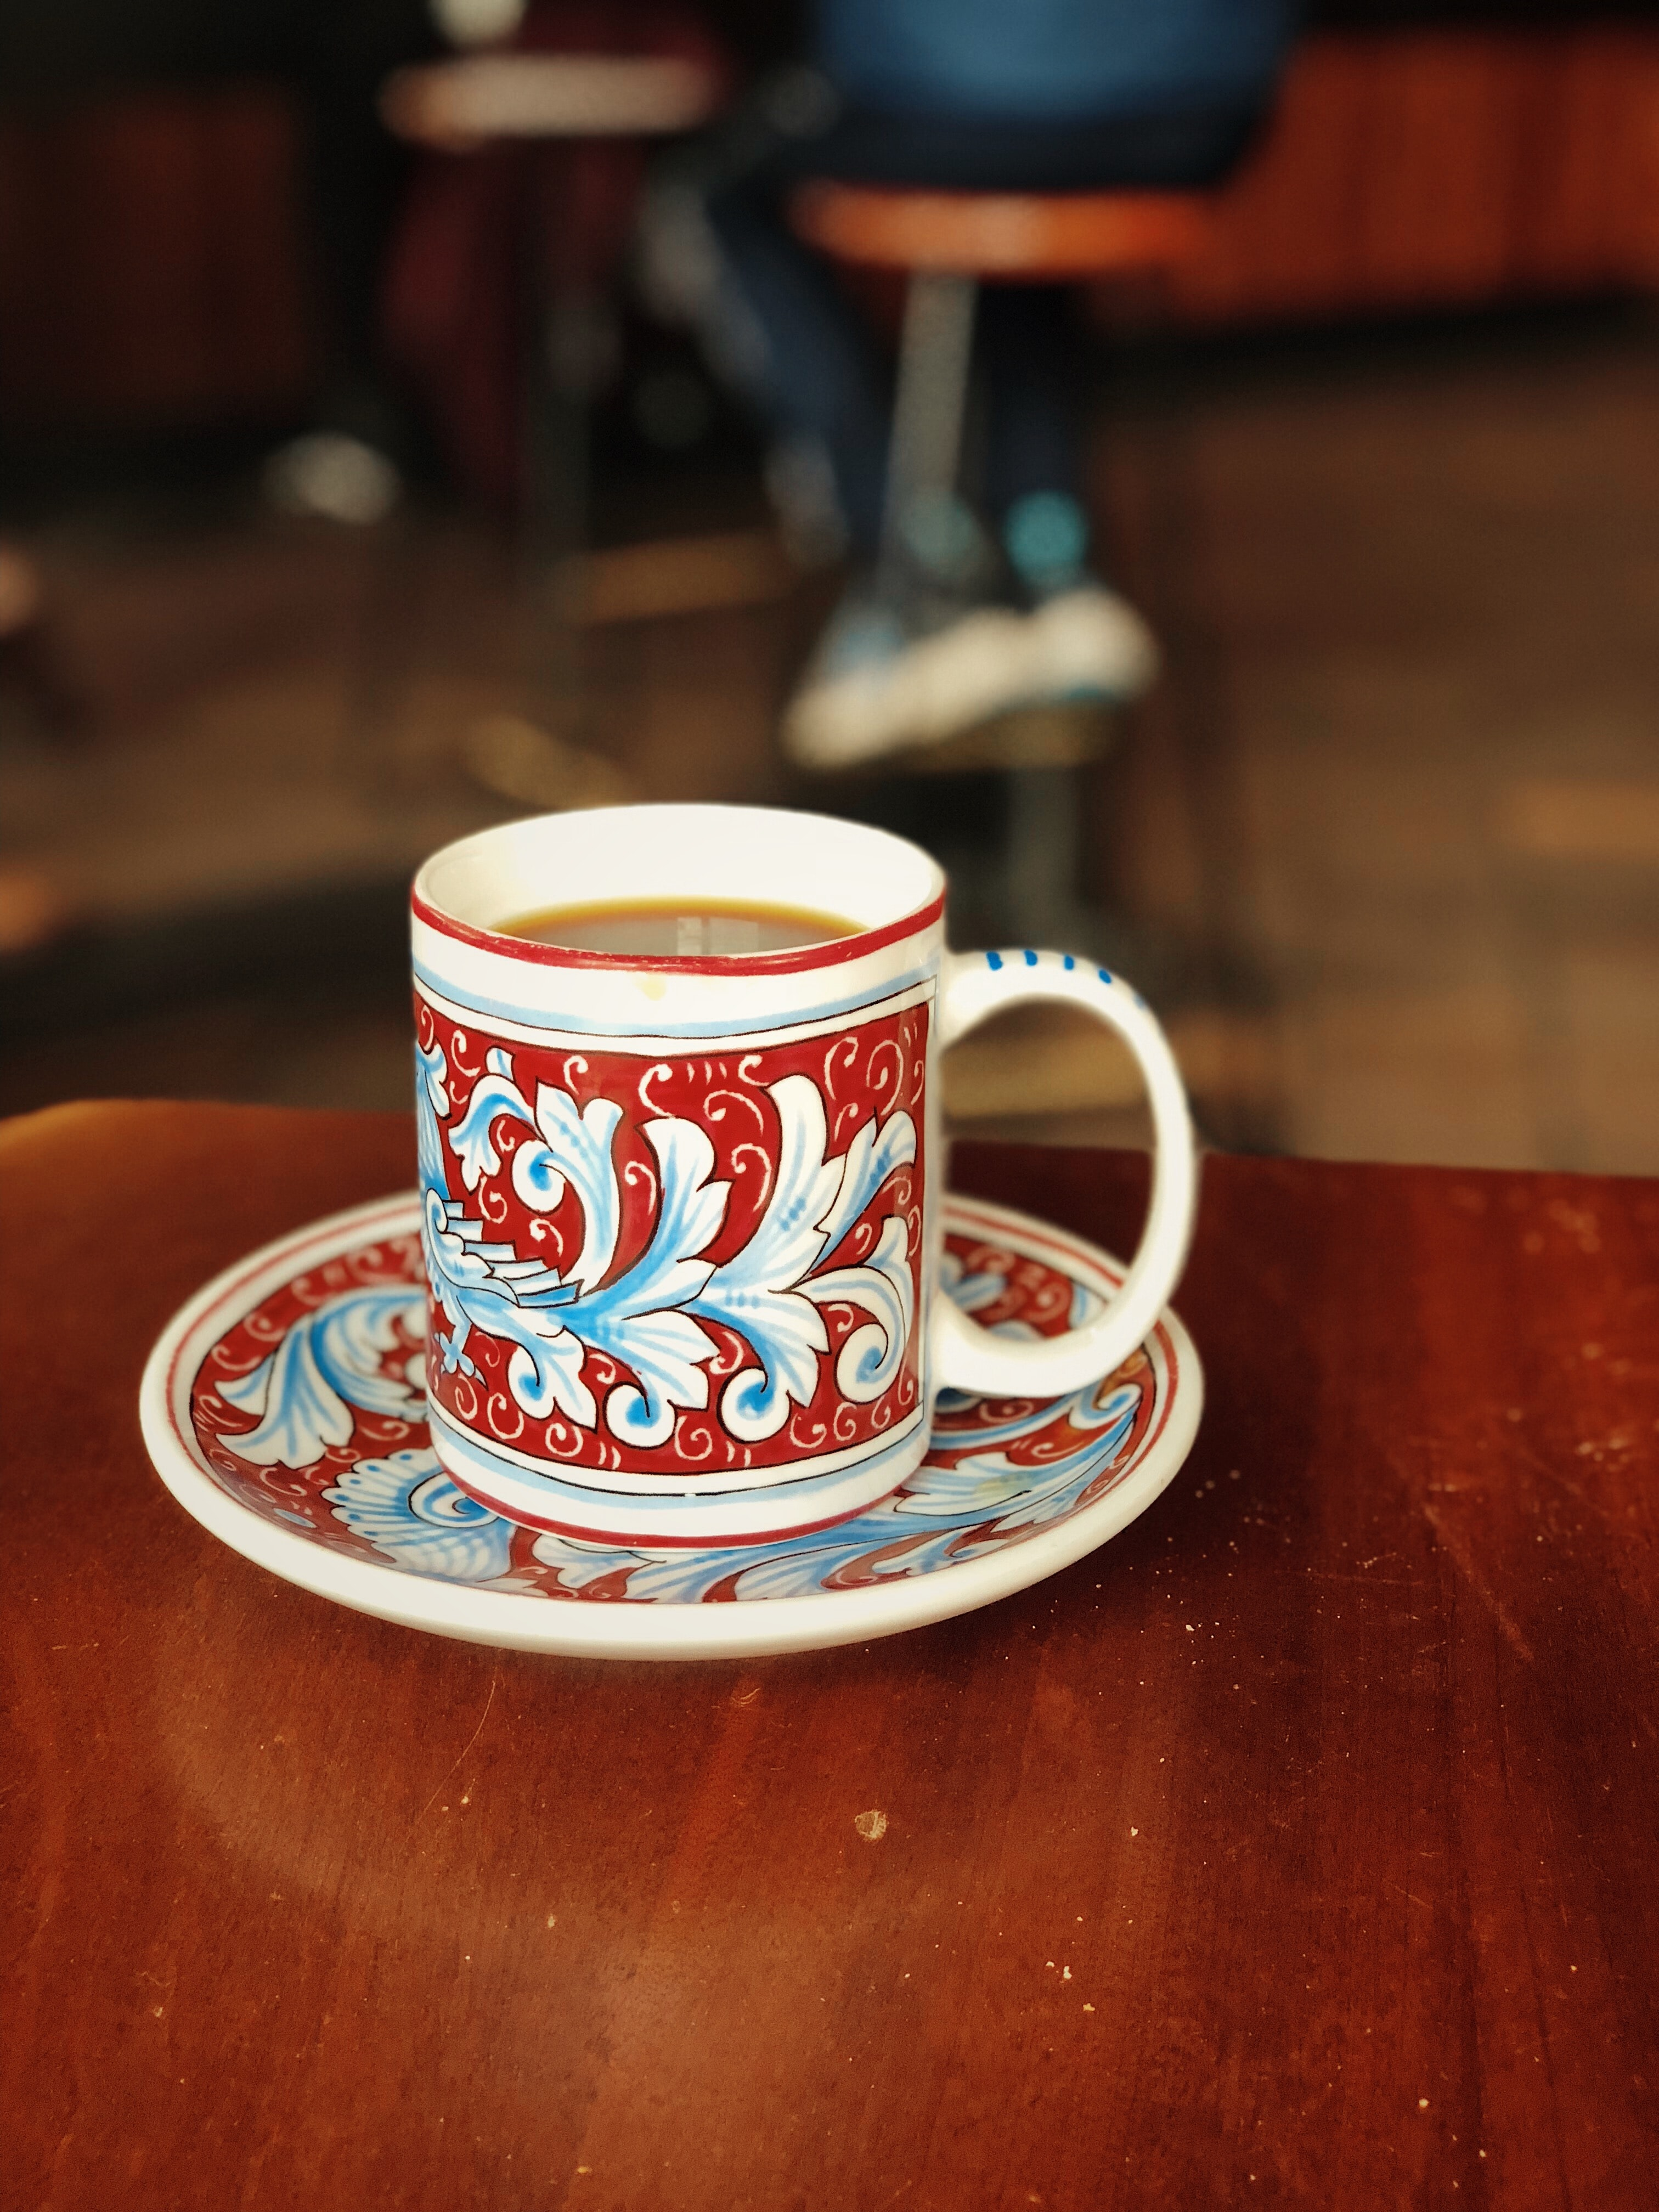 white and red ceramic mug on saucer with brown liquid